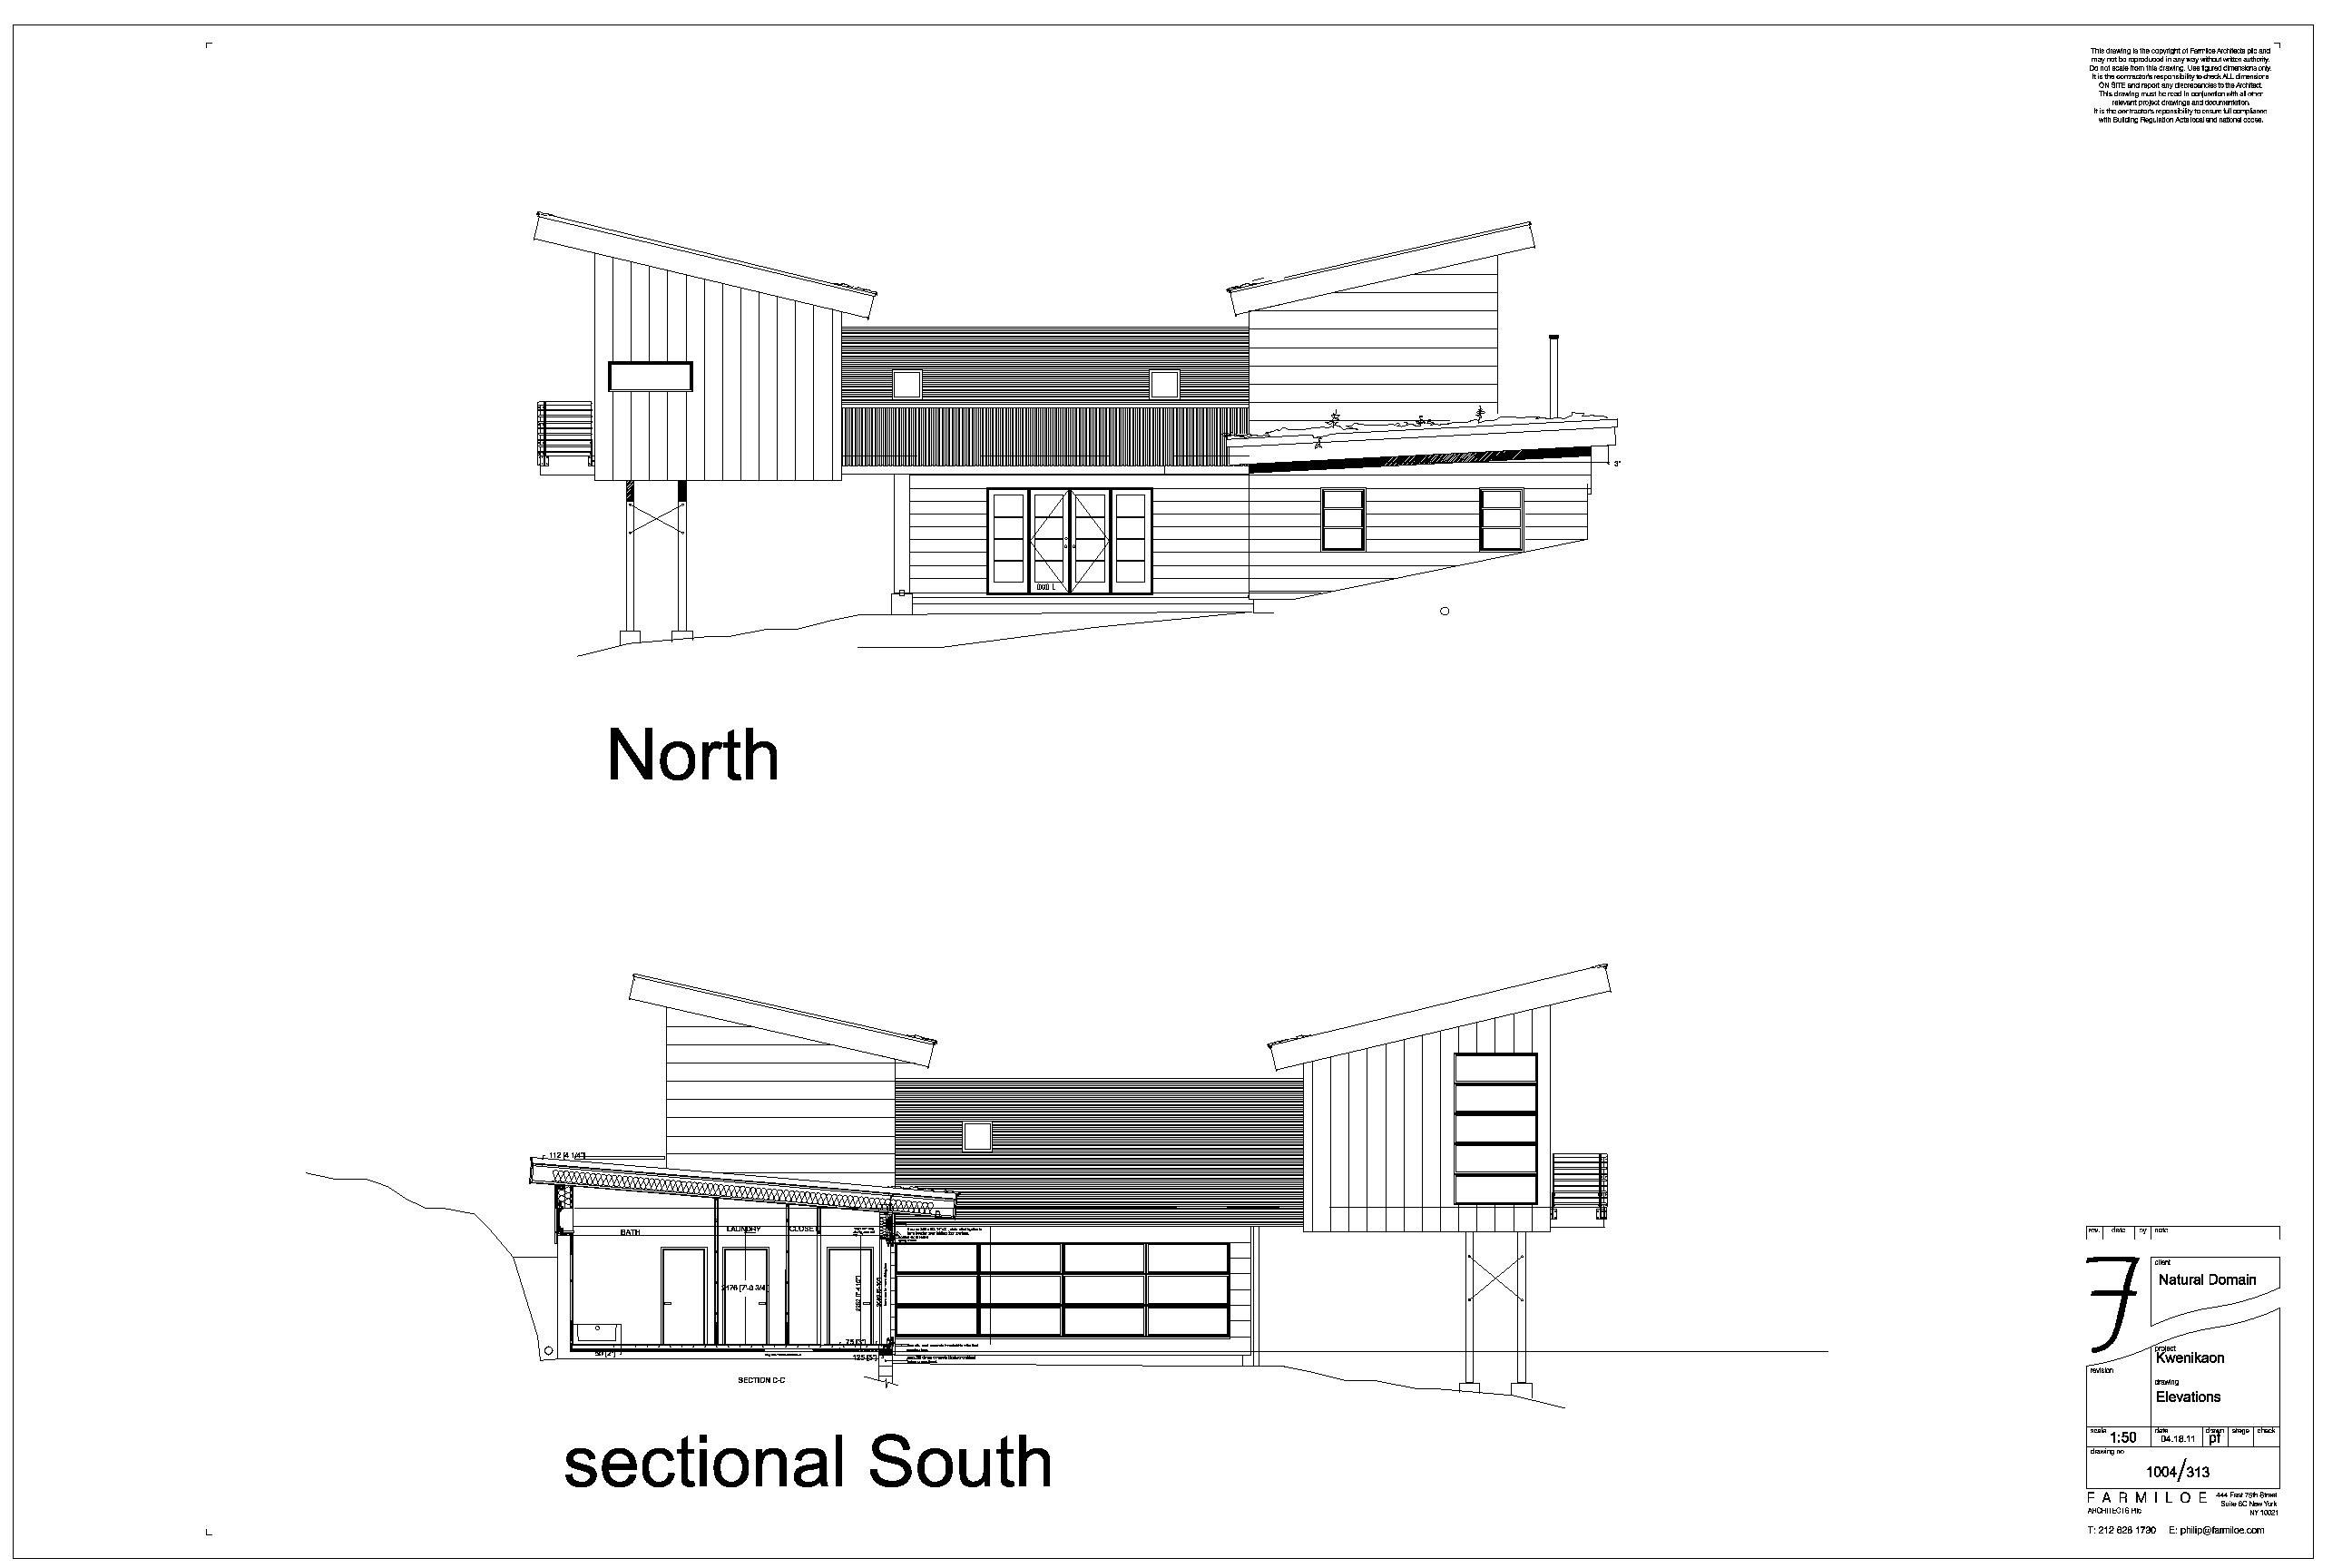 elevations(313) (1) - Copy001.jpg